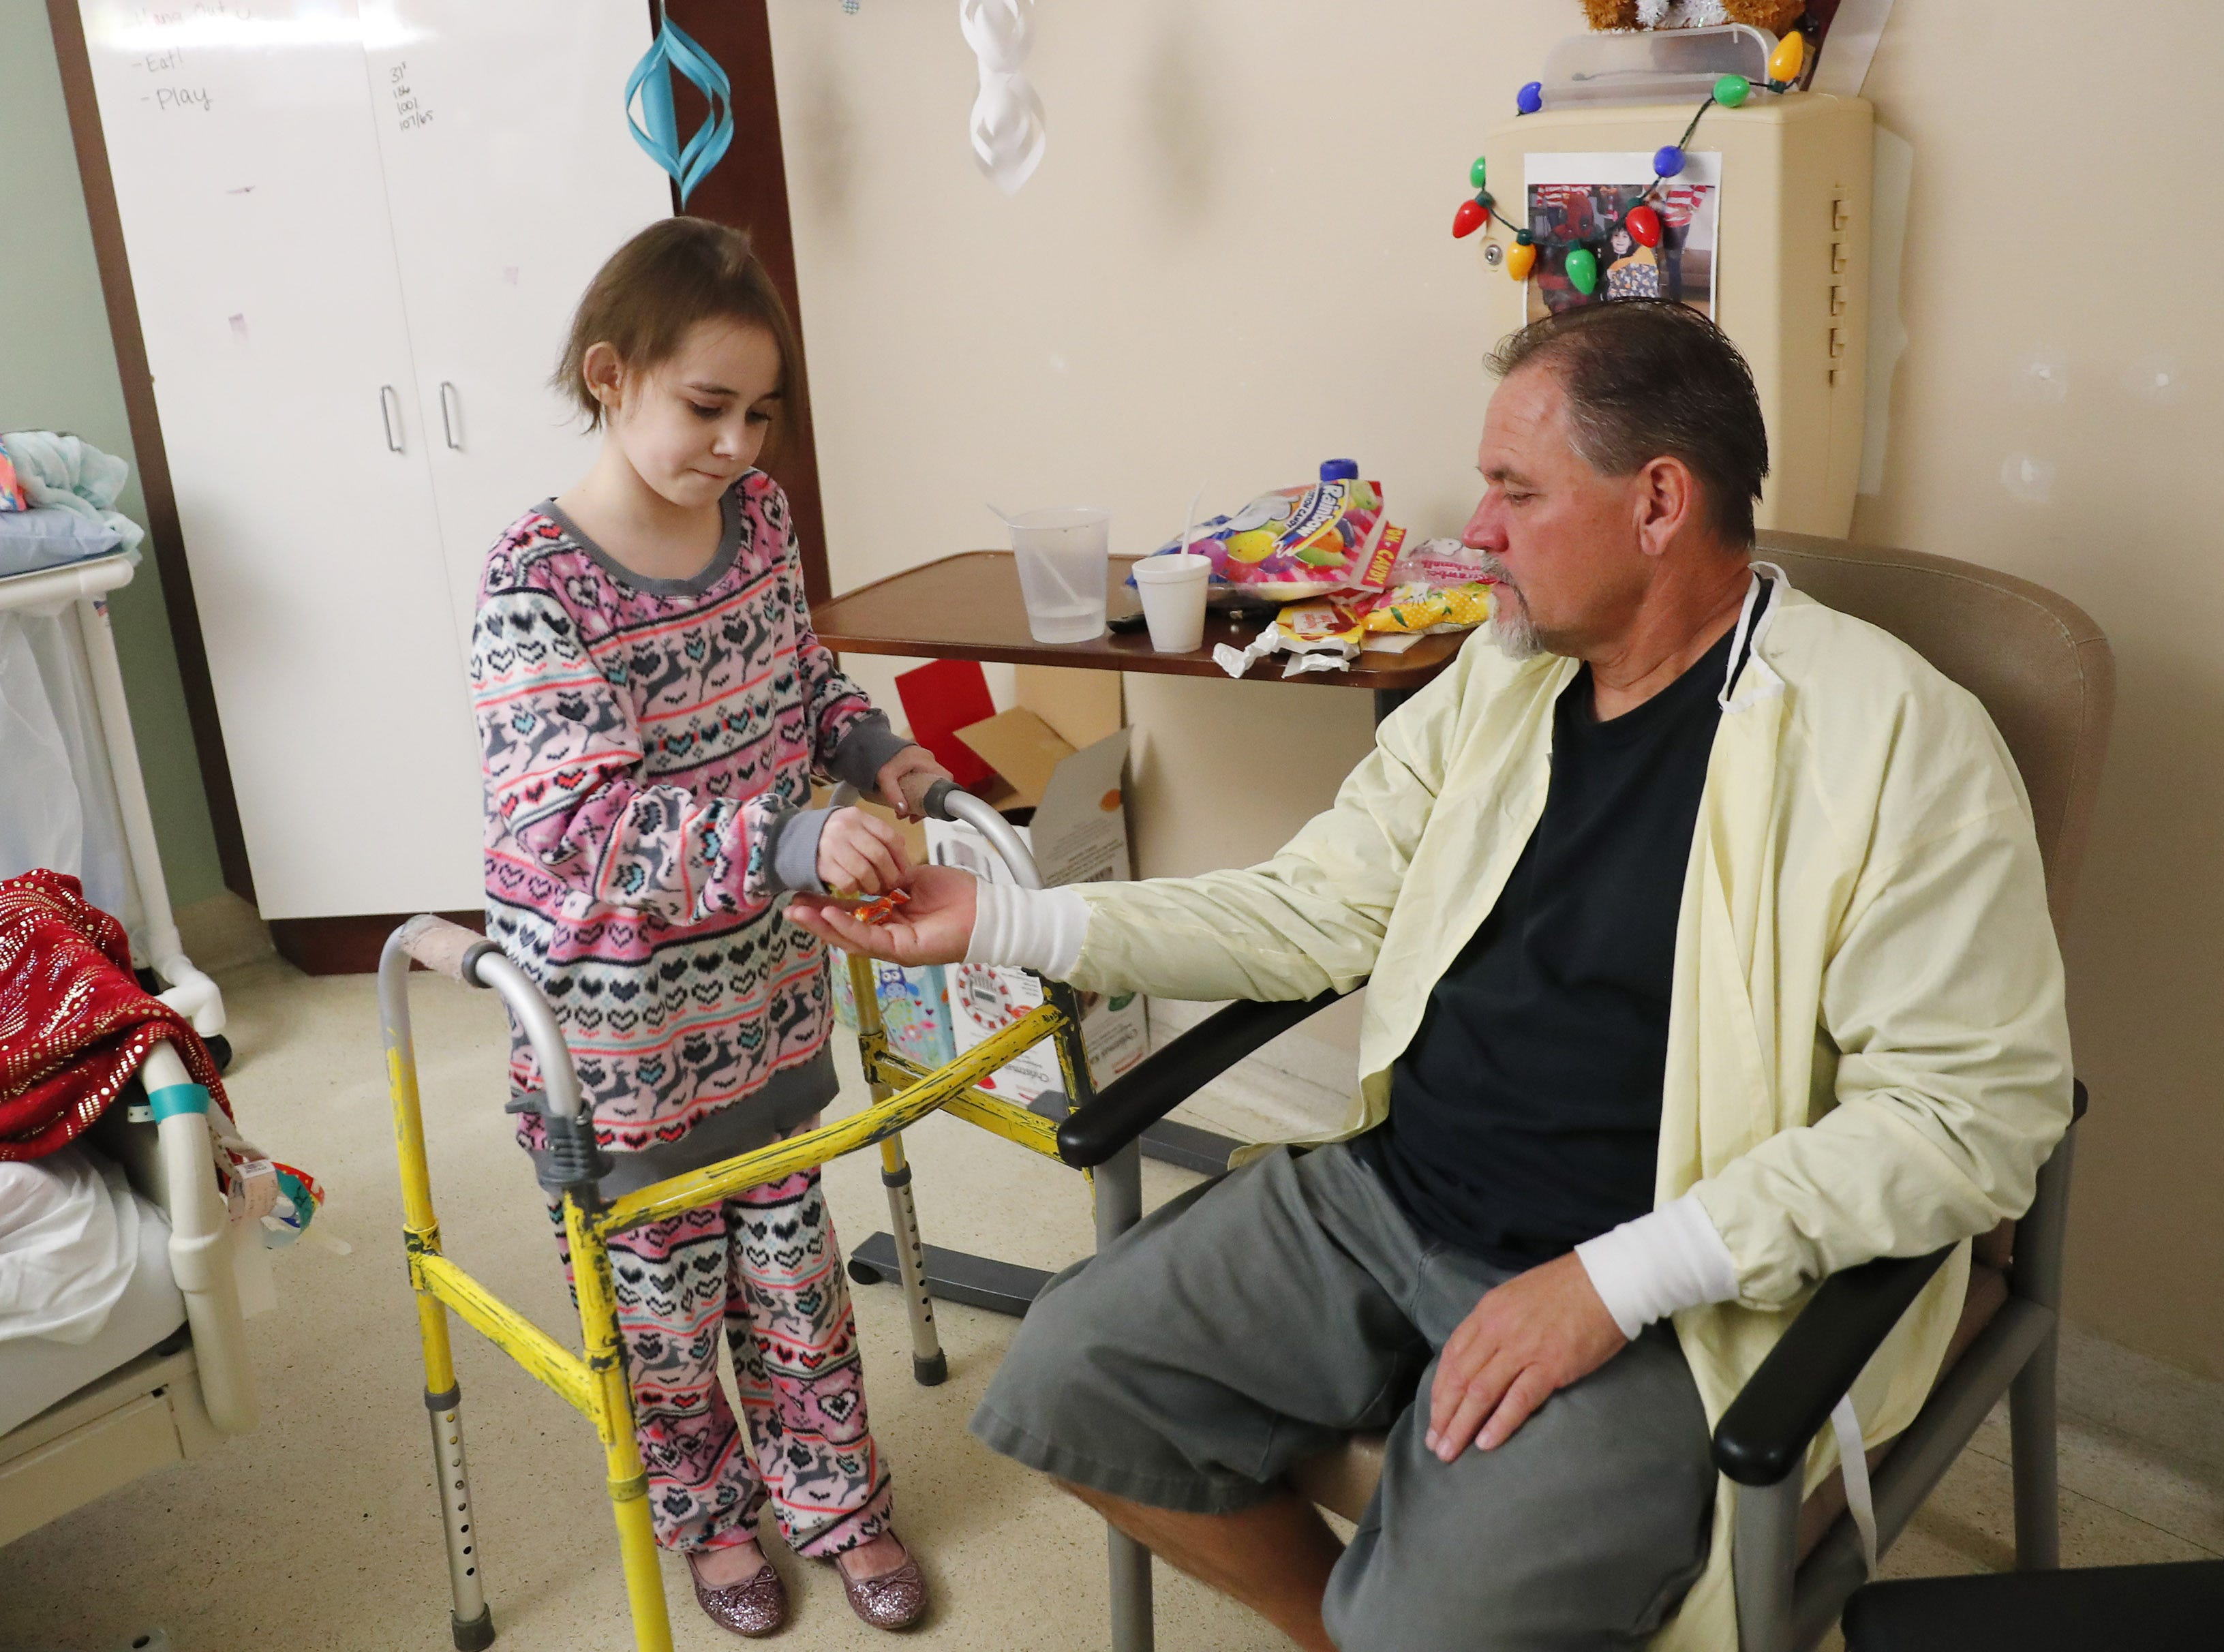 Isabella McCune gives candy to her dad, J.D., in her room at the Arizona Burn Center in Phoenix on Dec. 12, 2018. The 9-year-old was severely burned in a home accident in March.